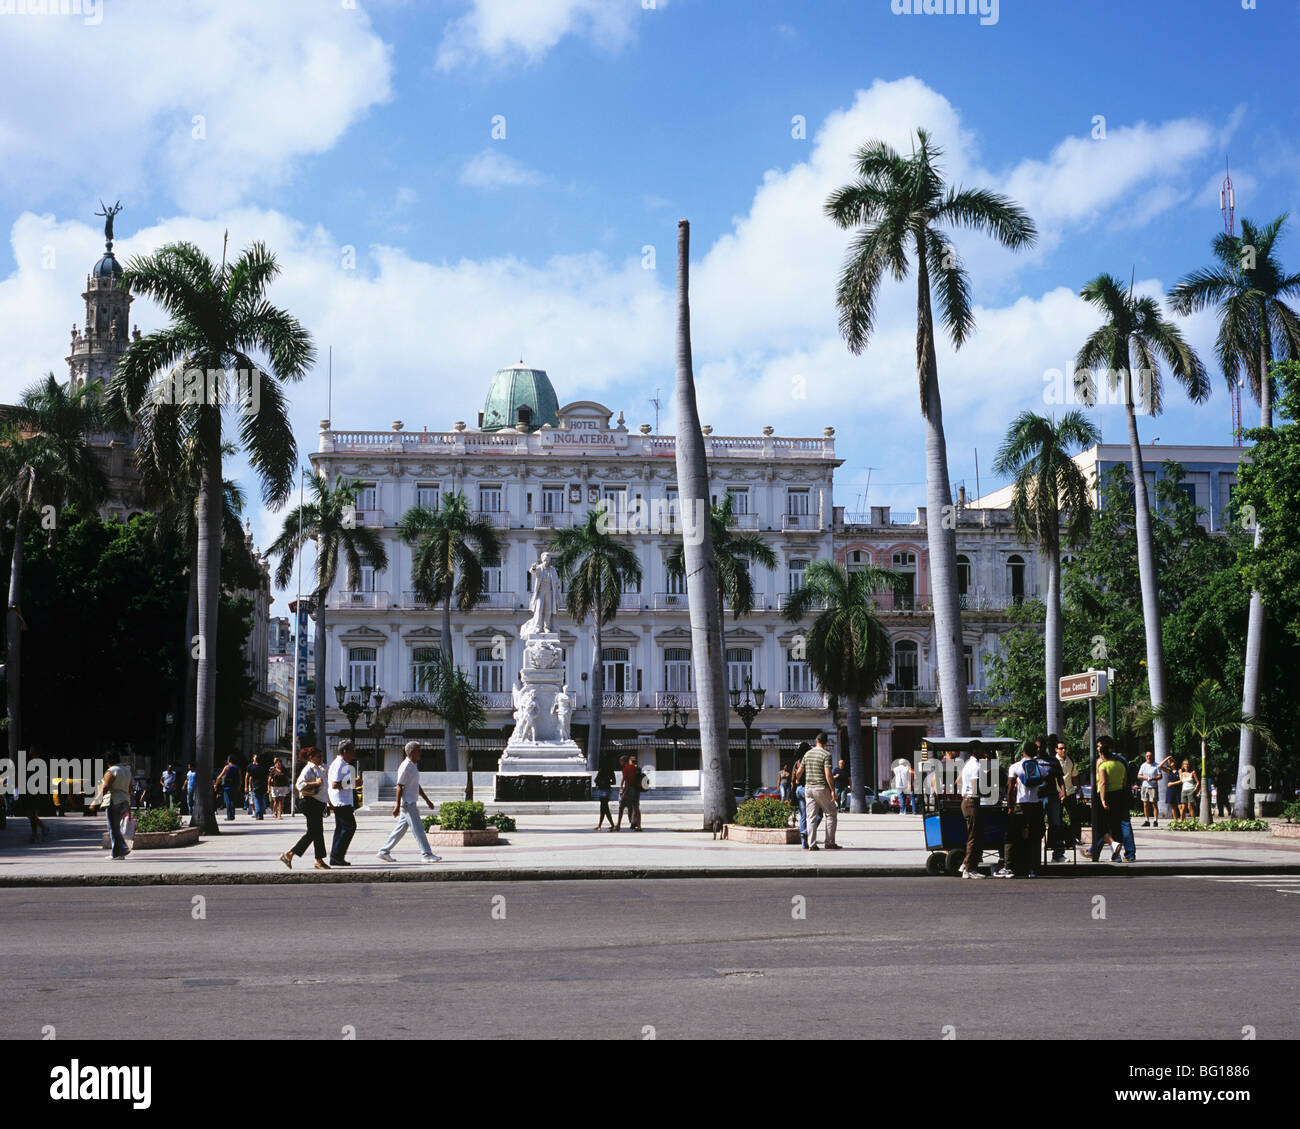 Parque Central and Hotel Inglaterra, Havana, Cuba, West Indies, Central America - Stock Image